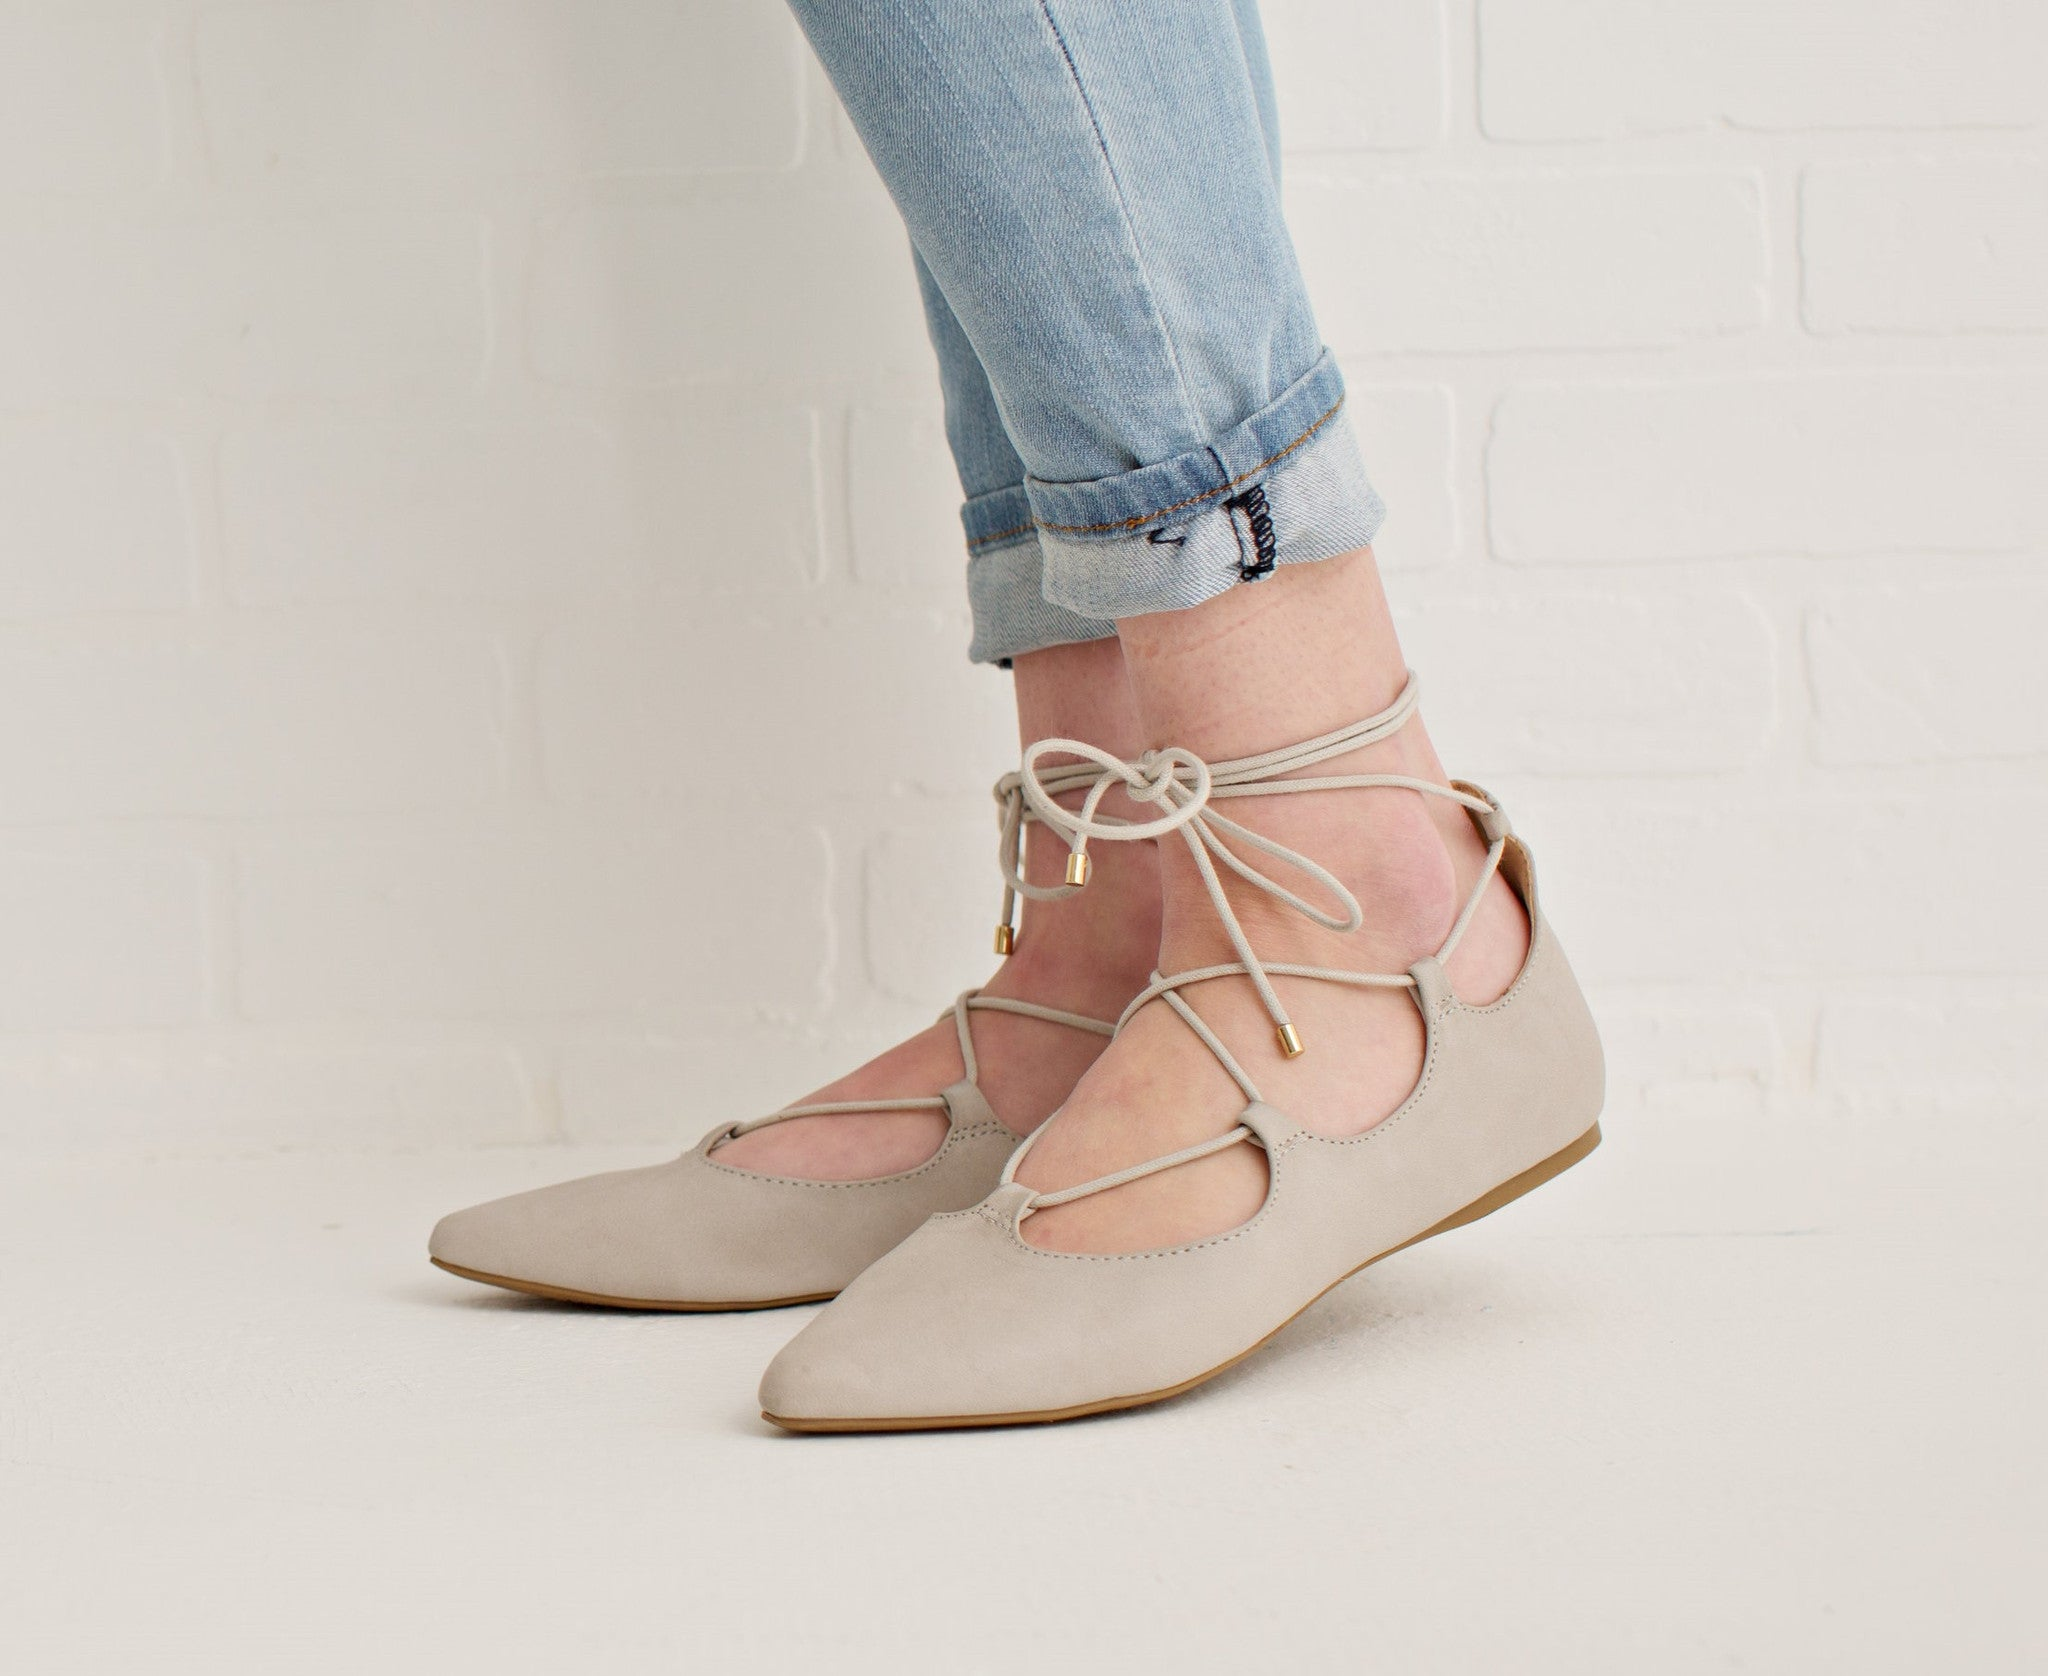 LACE UP FLATS - LIGHT GRAY – Simply Reese